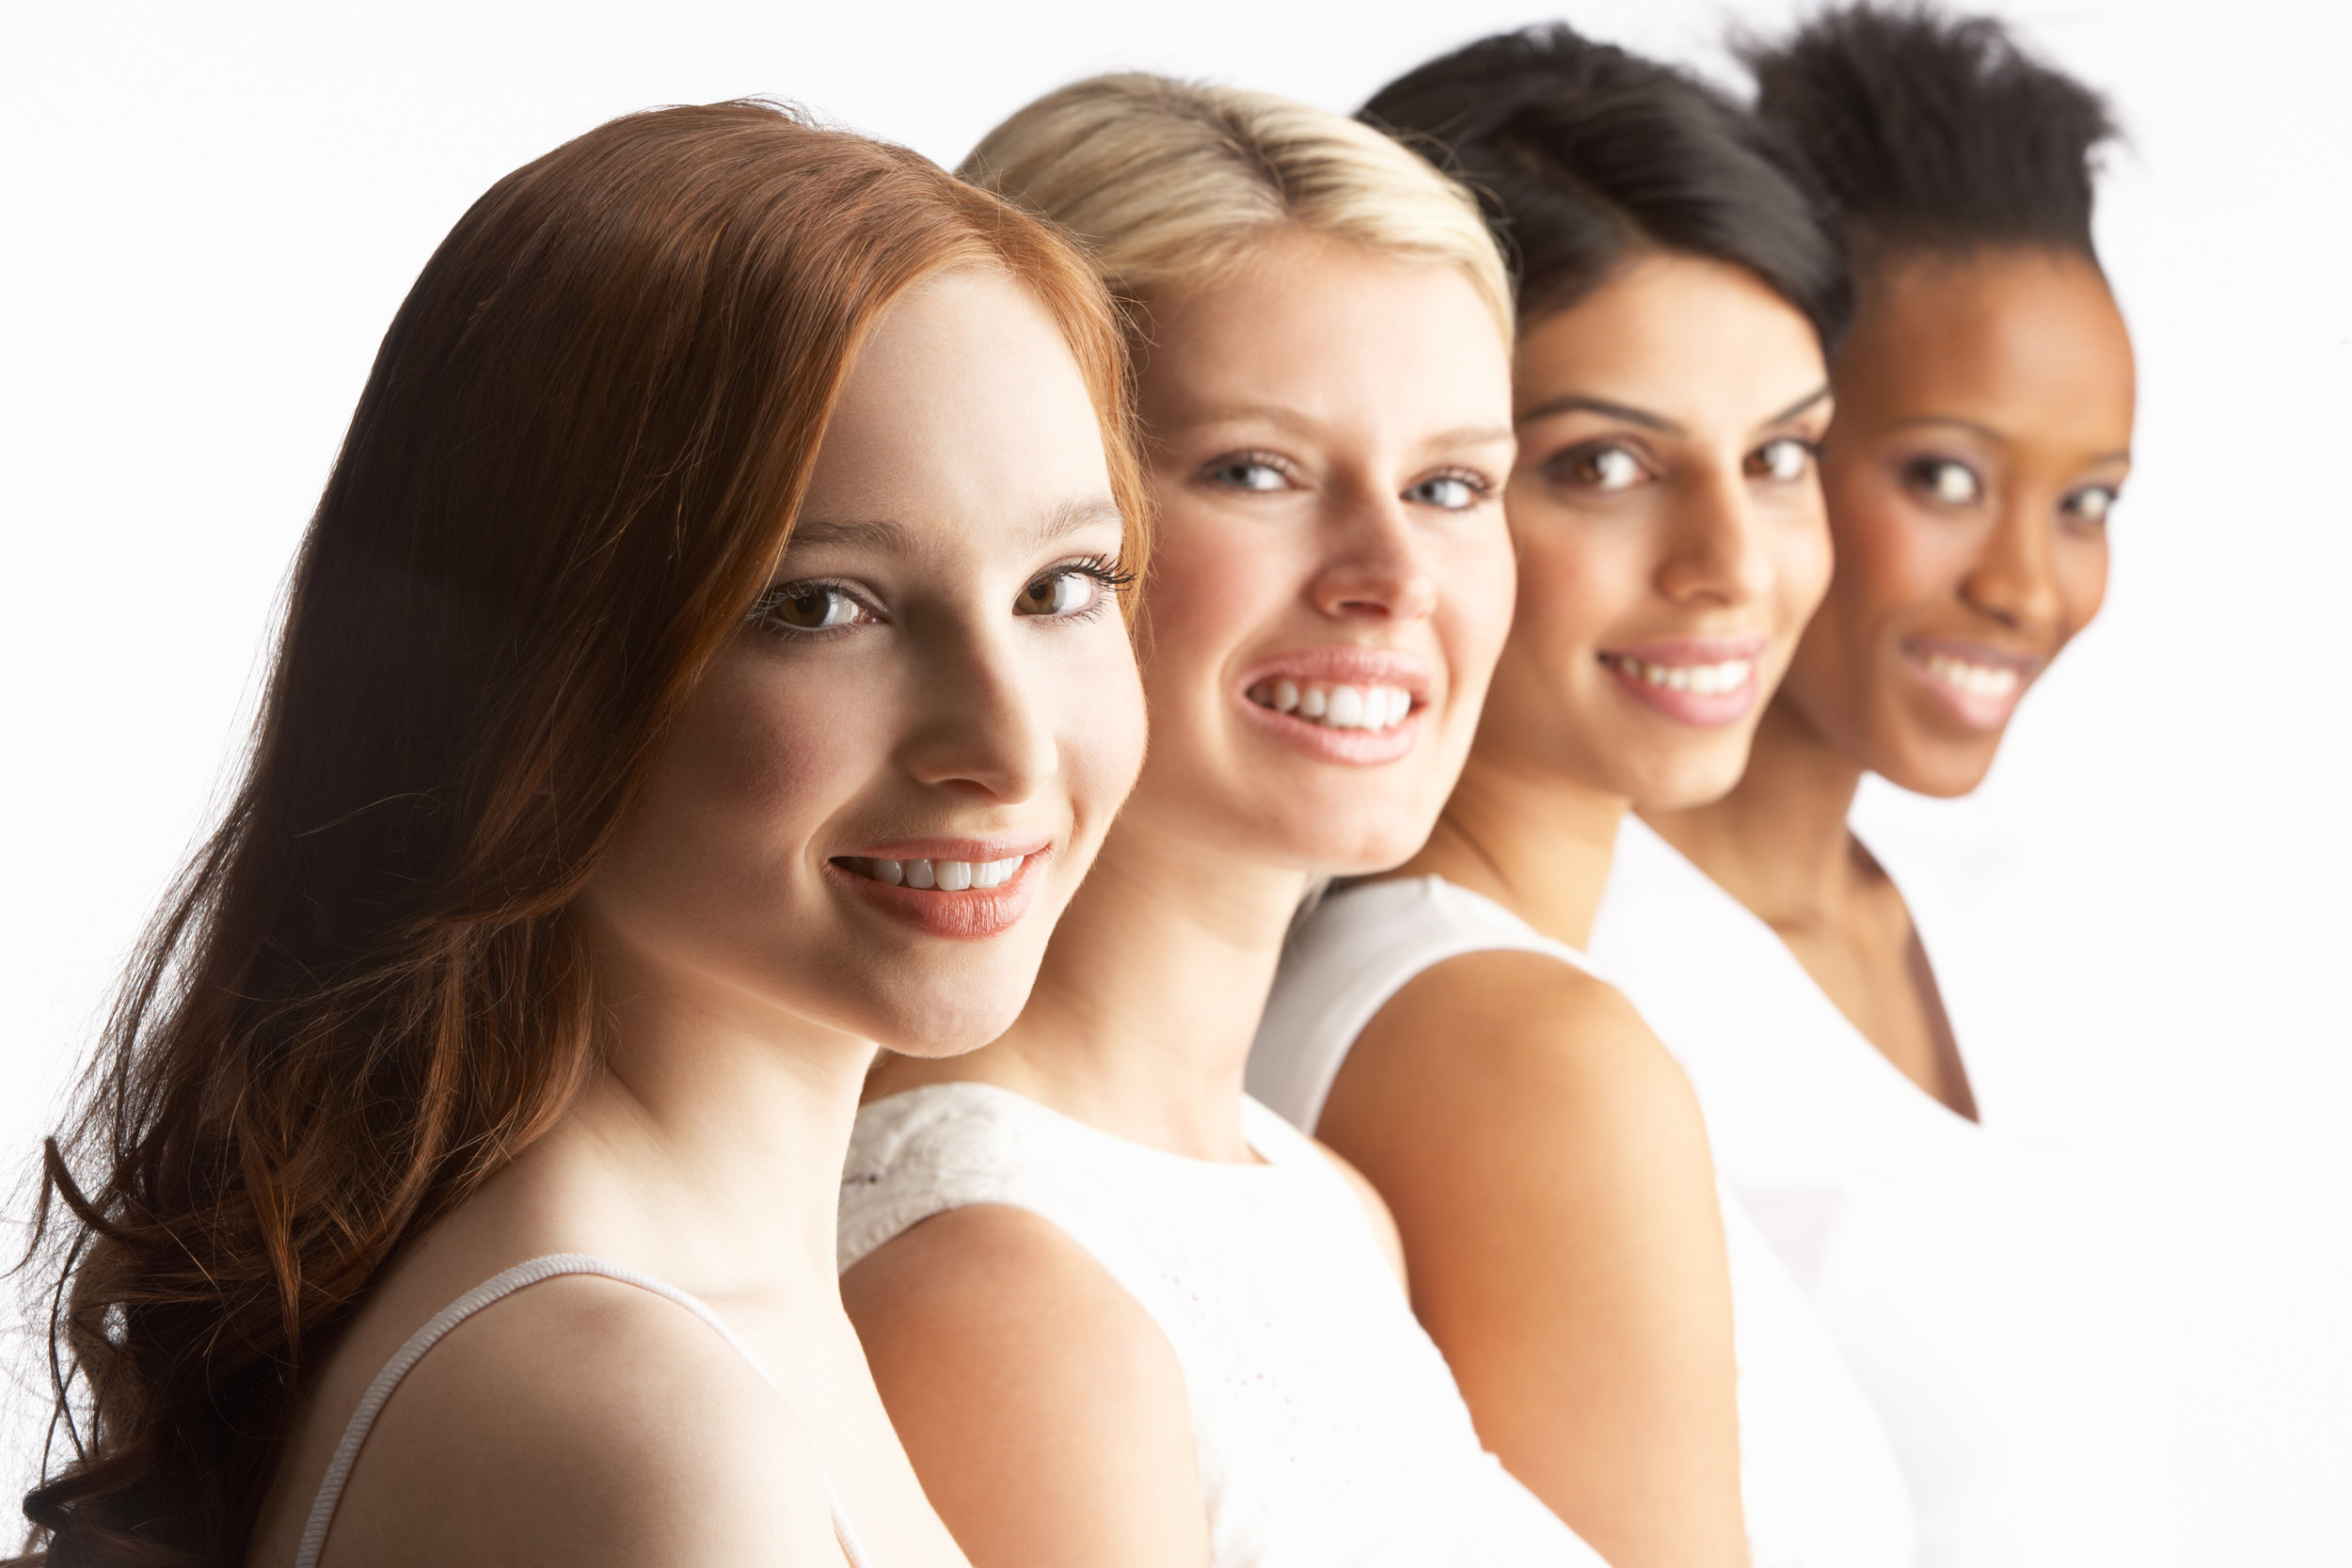 Individualized Skincare. - Précieux is the latest in skincare technology based on the genetic background of an individual.This novel approach to skin care targets problems related to specific ethnic groups.